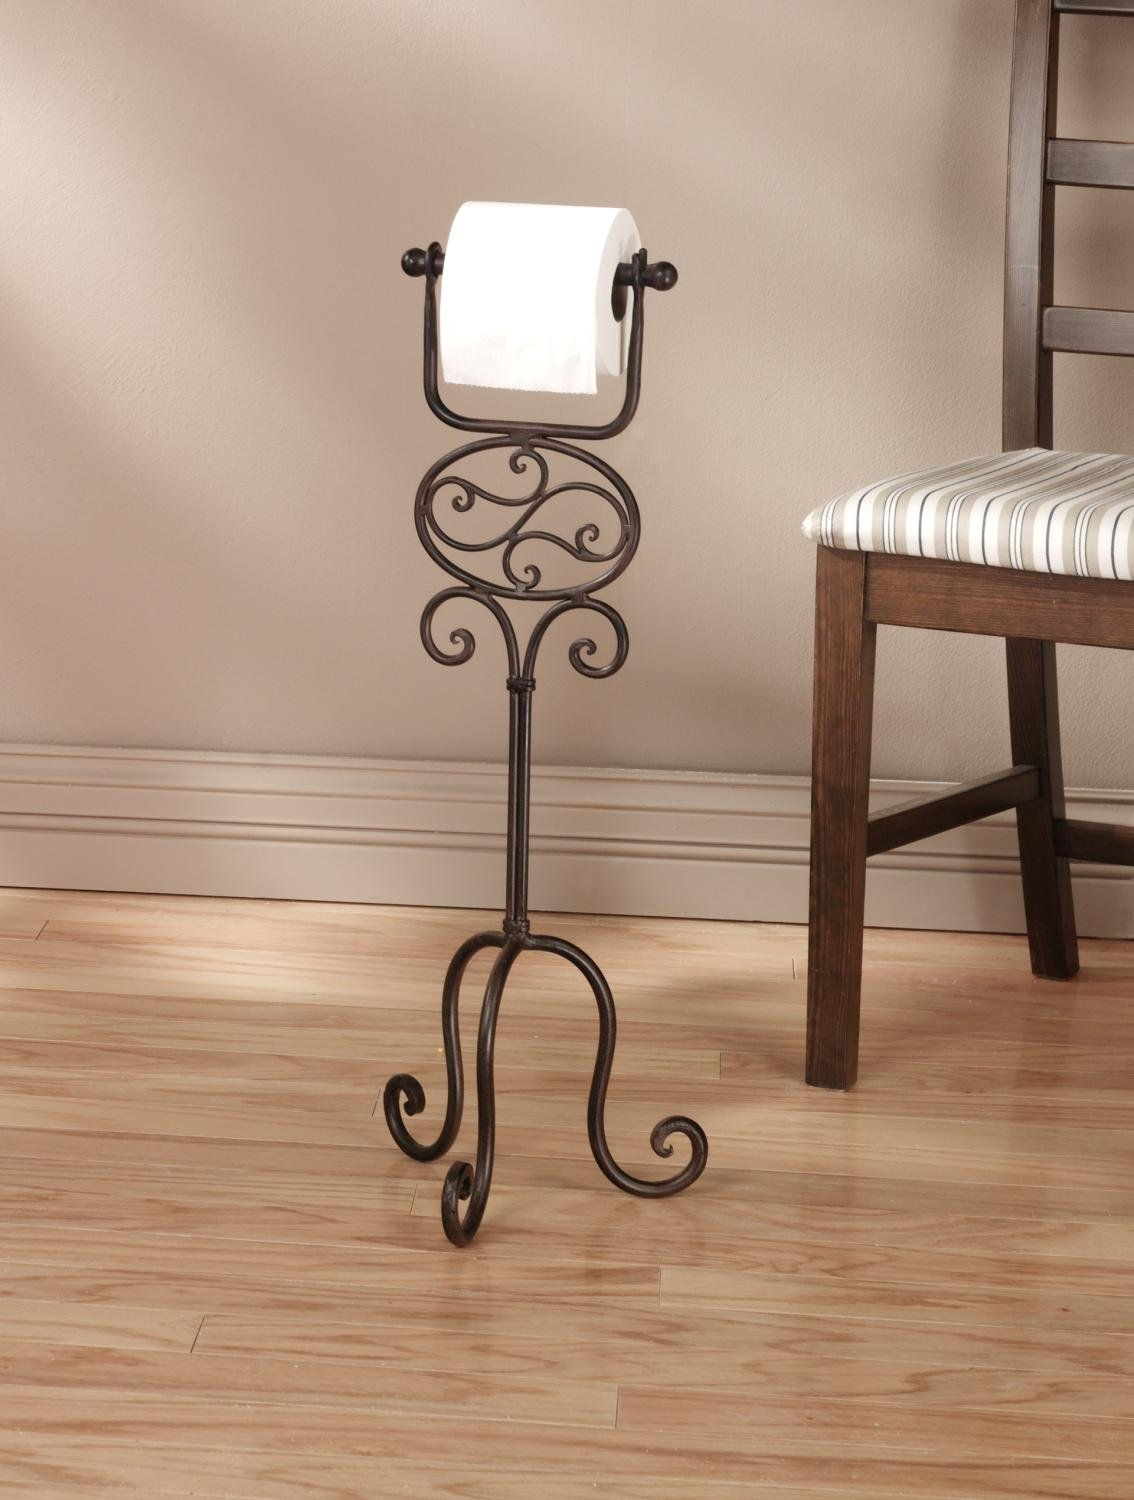 Toilet Paper Floor Stand, Elegant and artiscally designed scroll work, Solid, Functional and simply beautiful